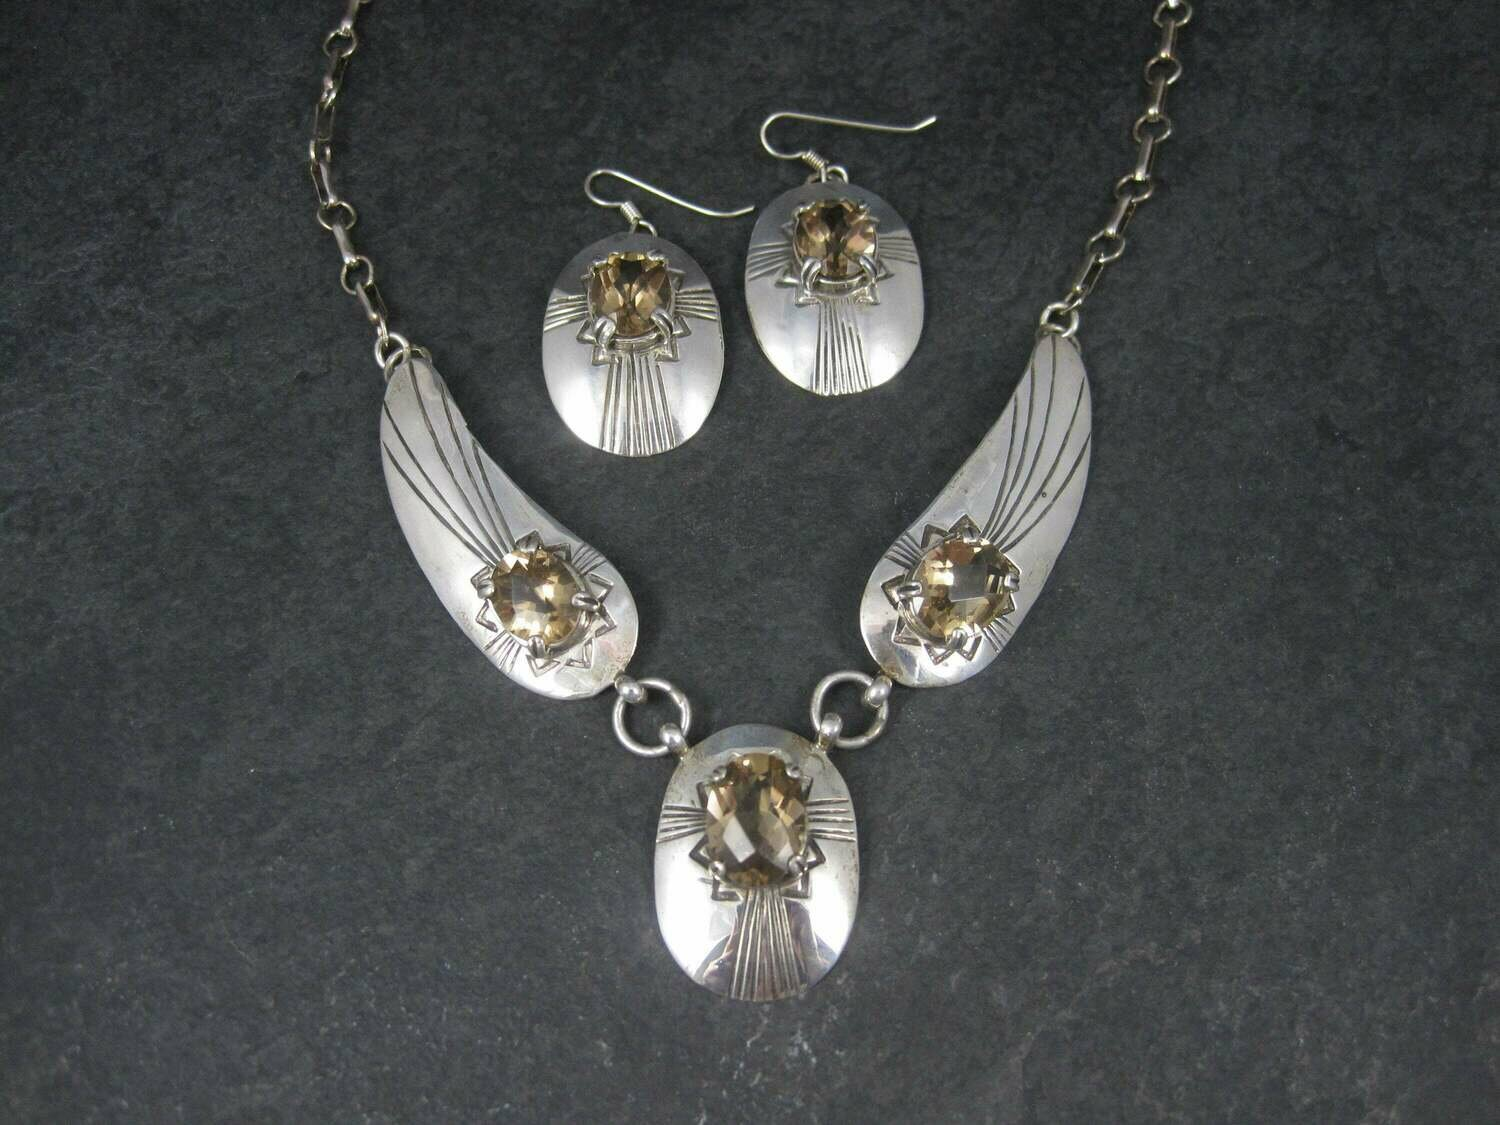 Vintage Southwestern Sterling Citrine Necklace Earrings Jewelry Set